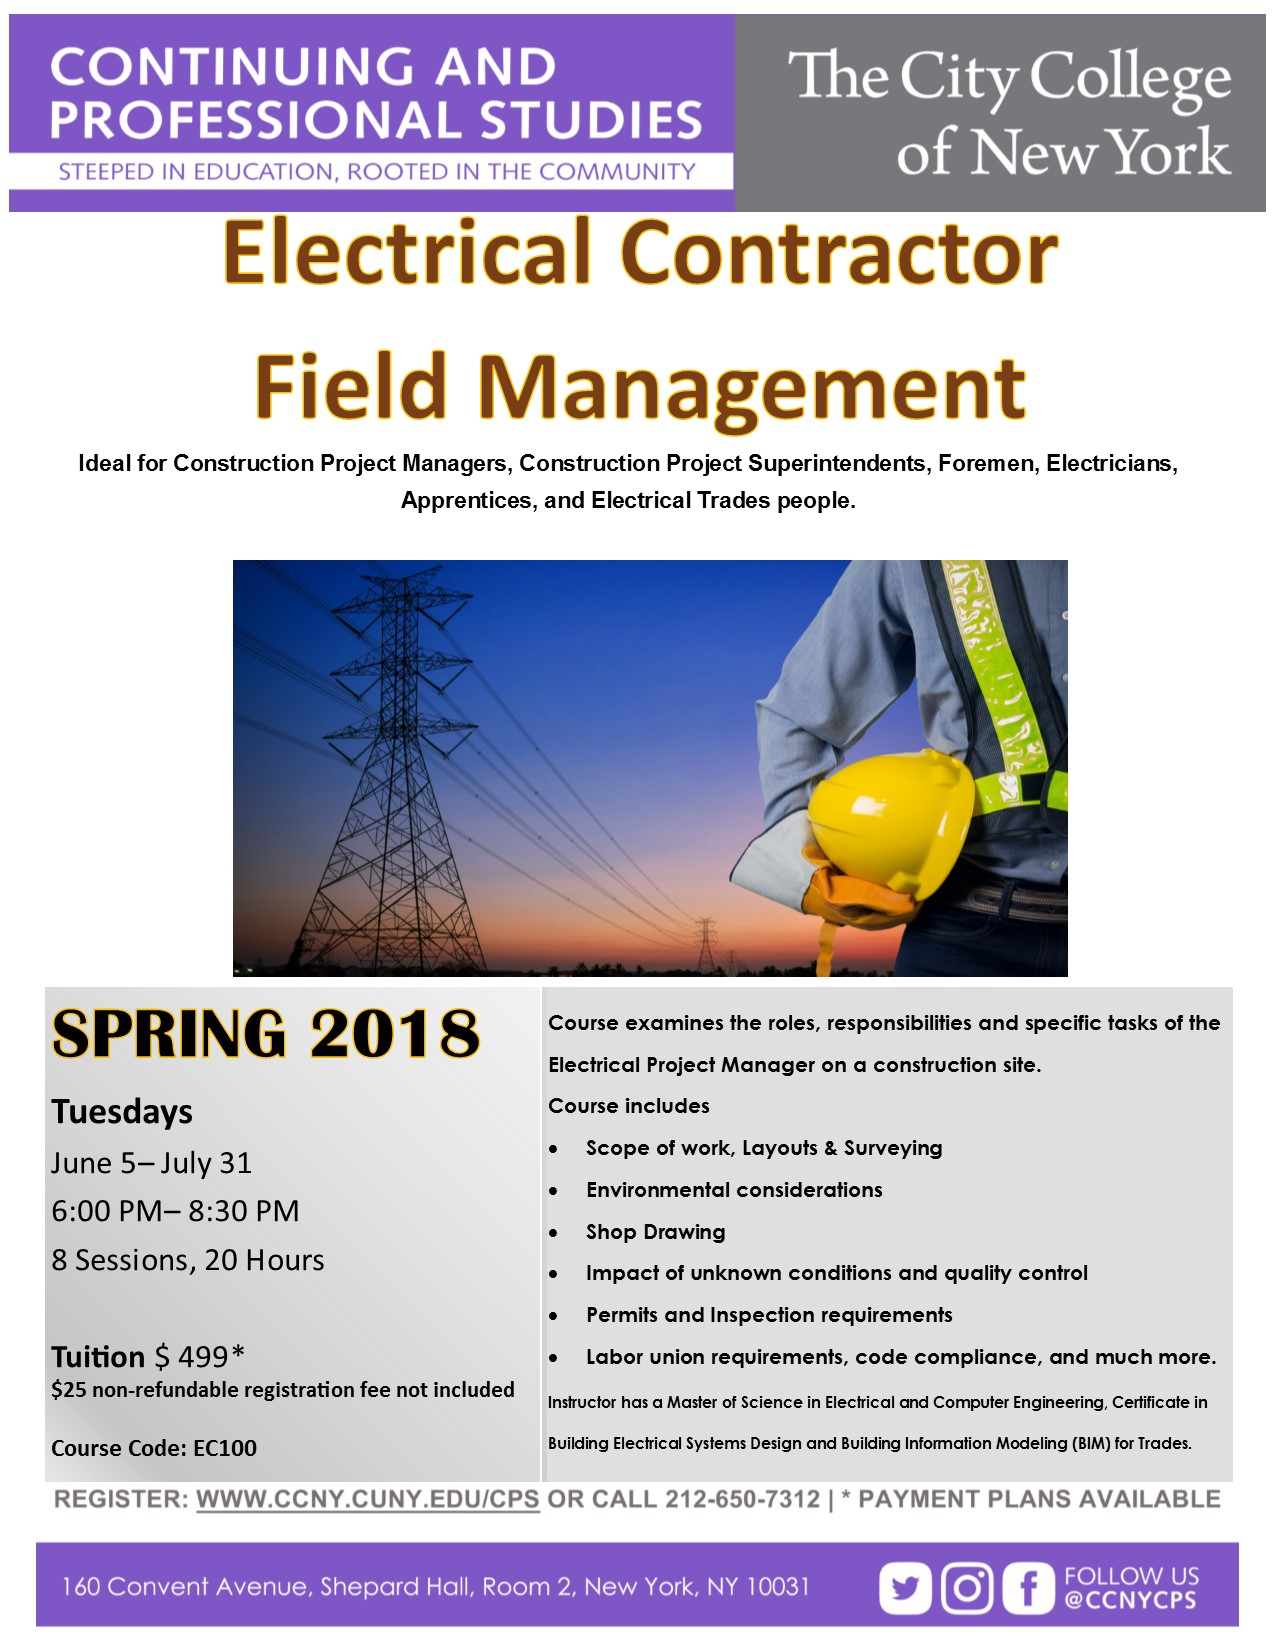 Electrical Contractor Field Management.jpg